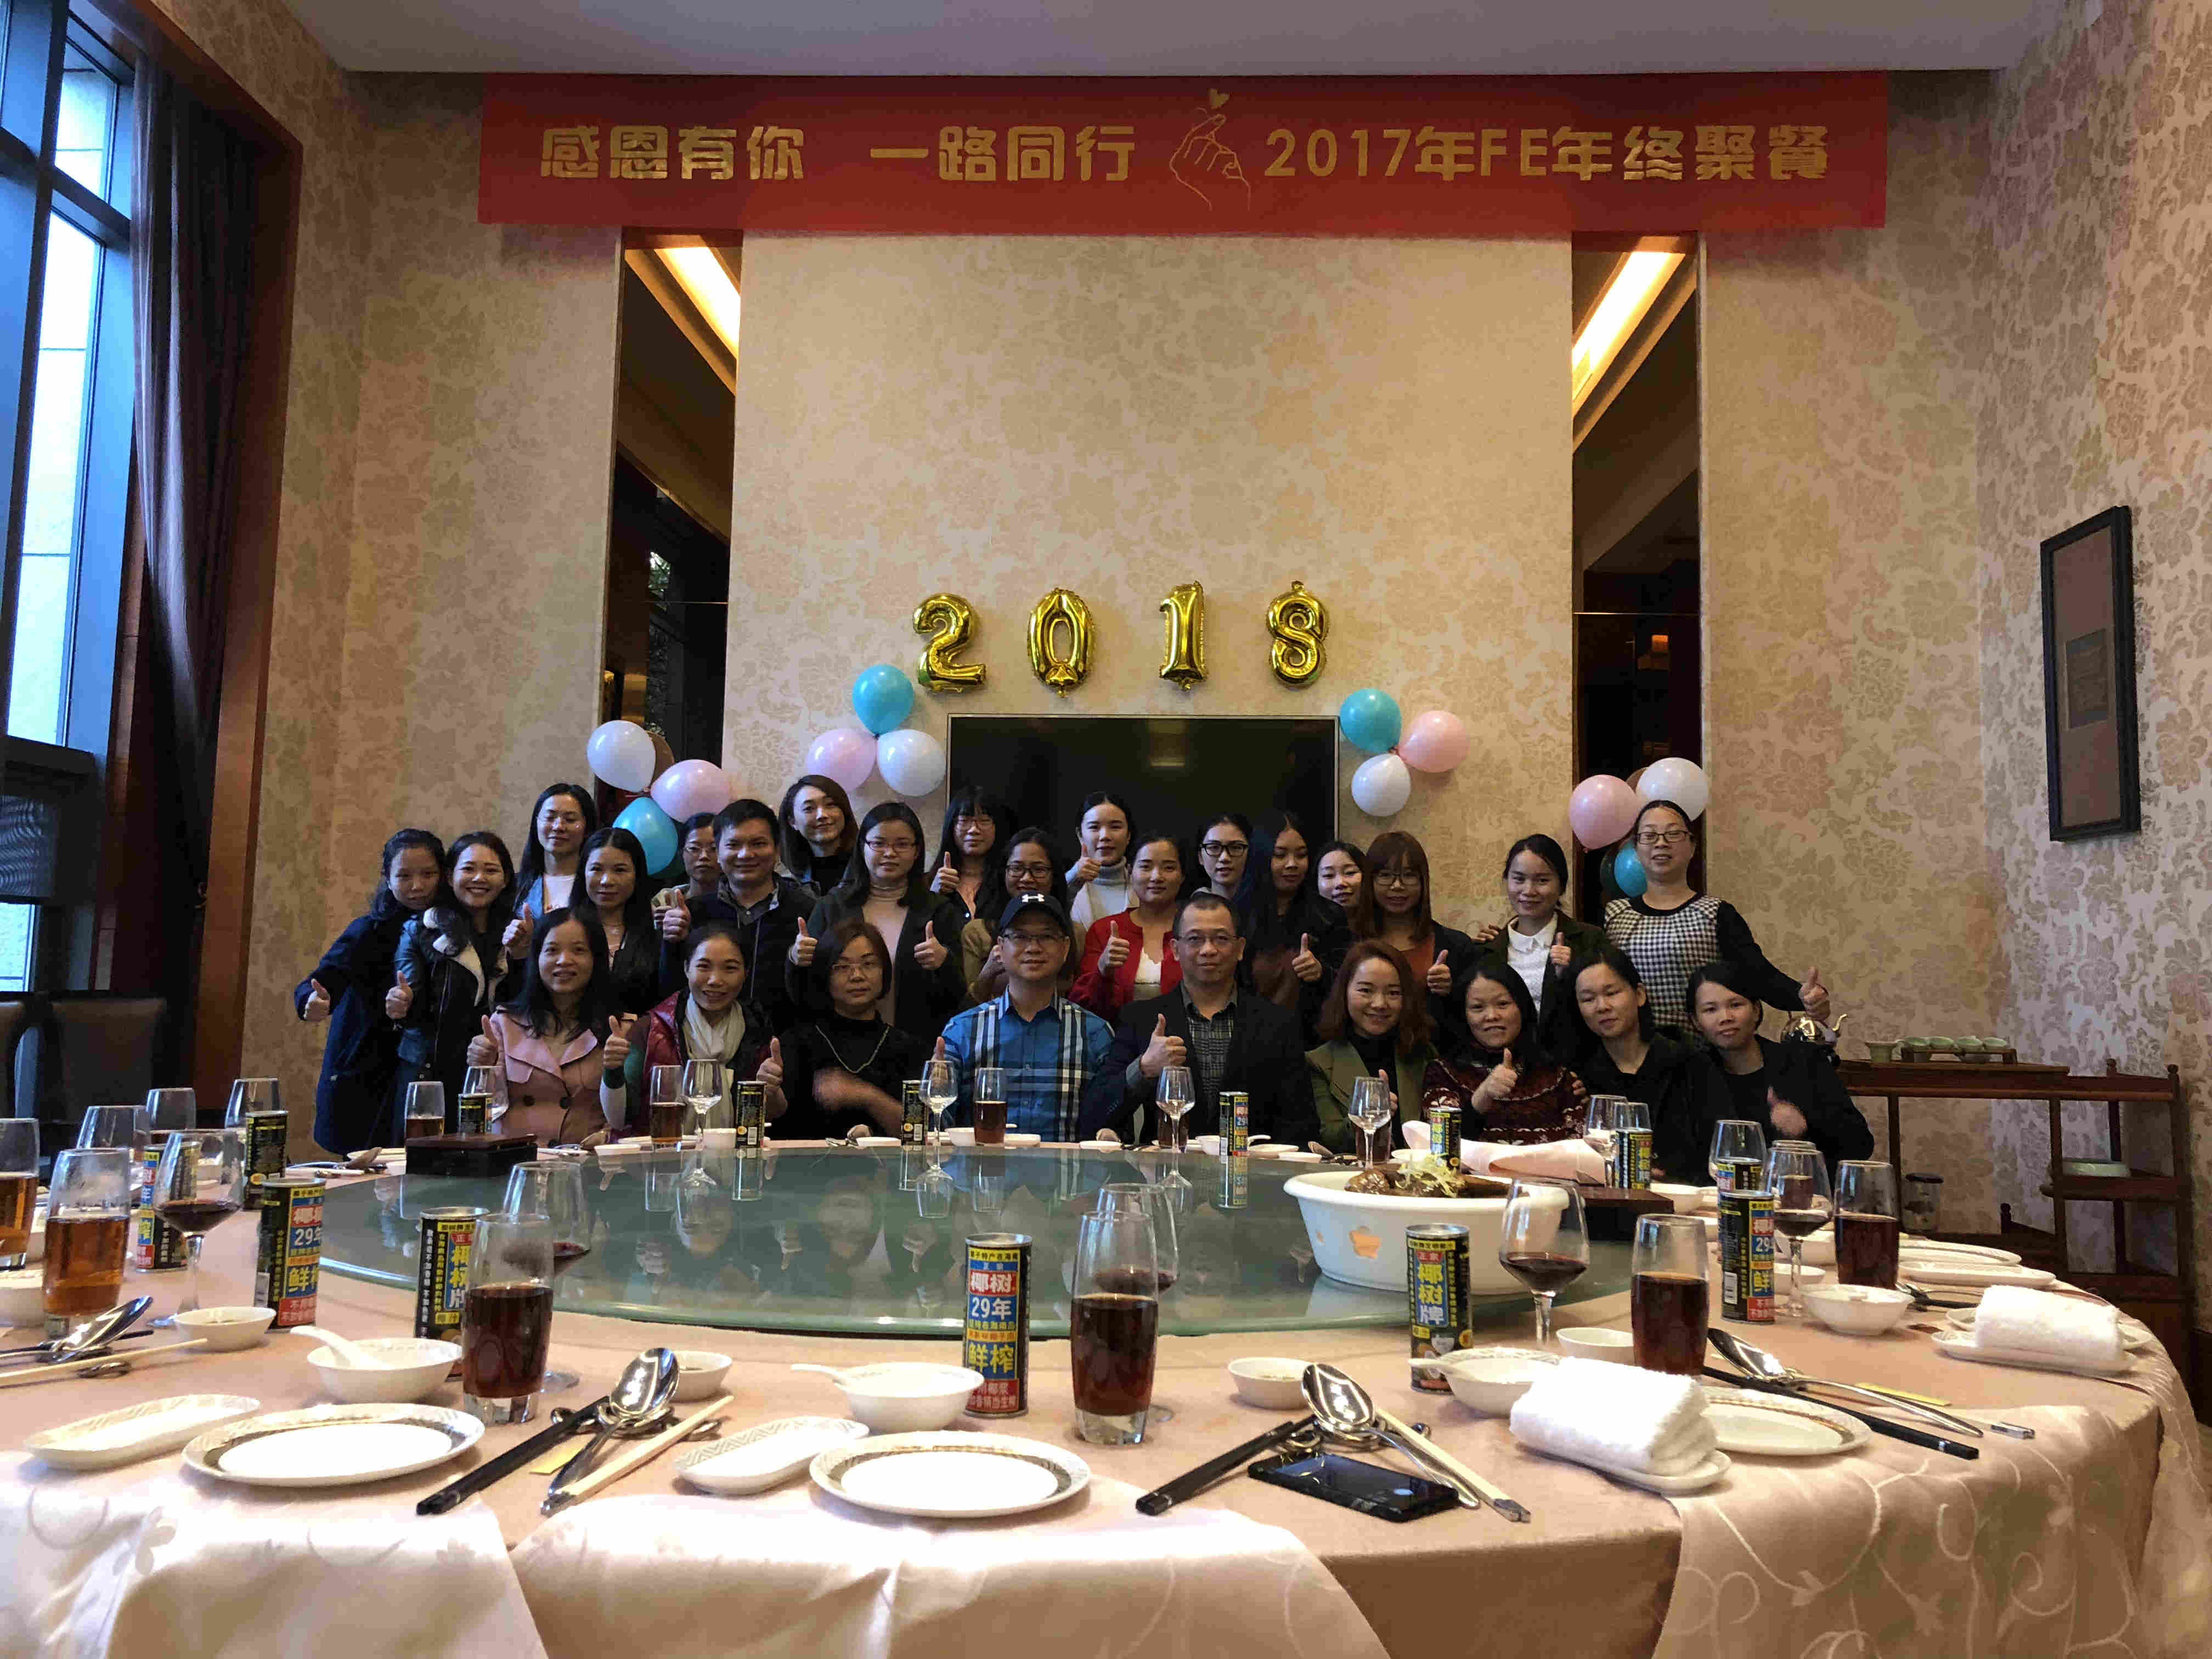 2017 Annual Party Of Donghong Craft & Art Co.,Ltd.